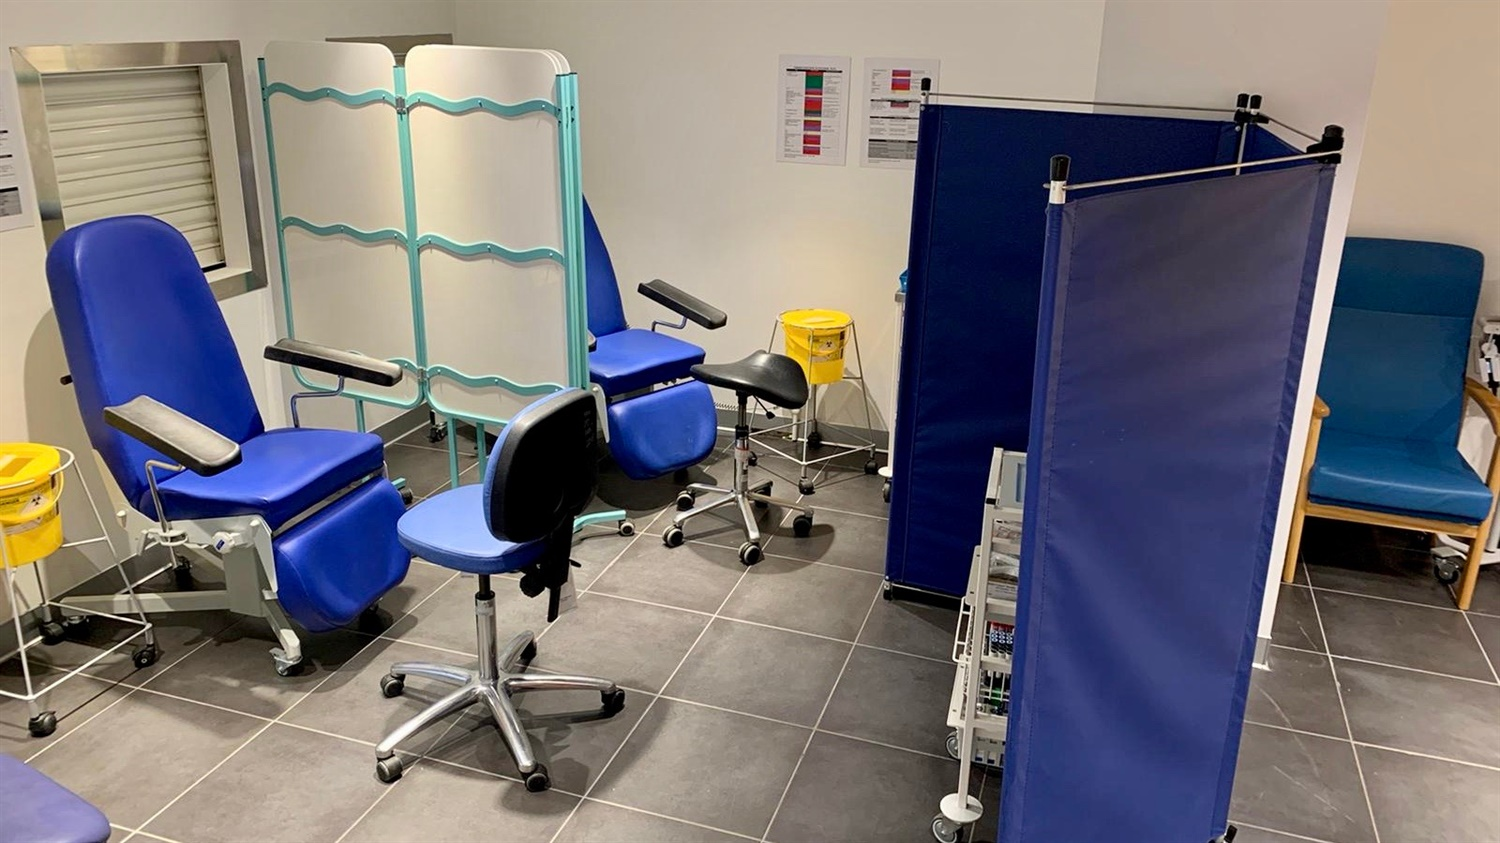 Birmingham New Street has opened an NHS outpatient clinic